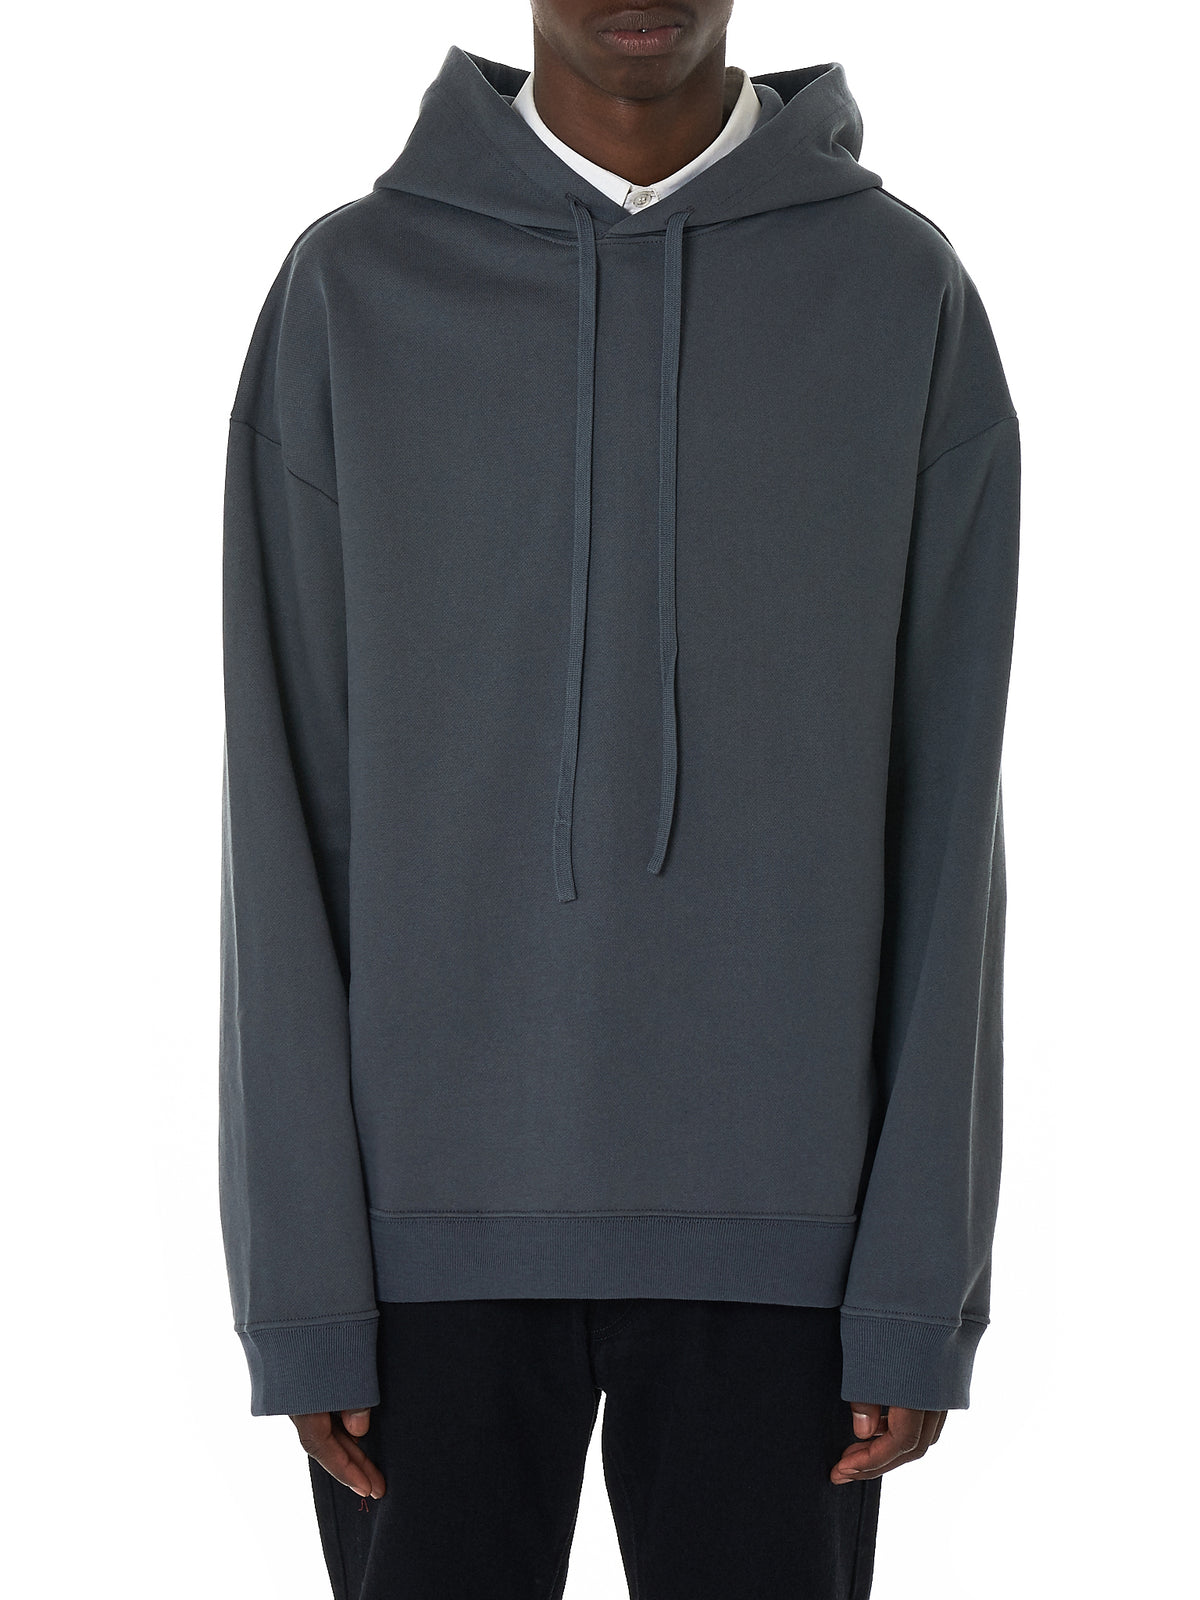 'Drugs' Hooded Pullover (182-164-19004-00083)